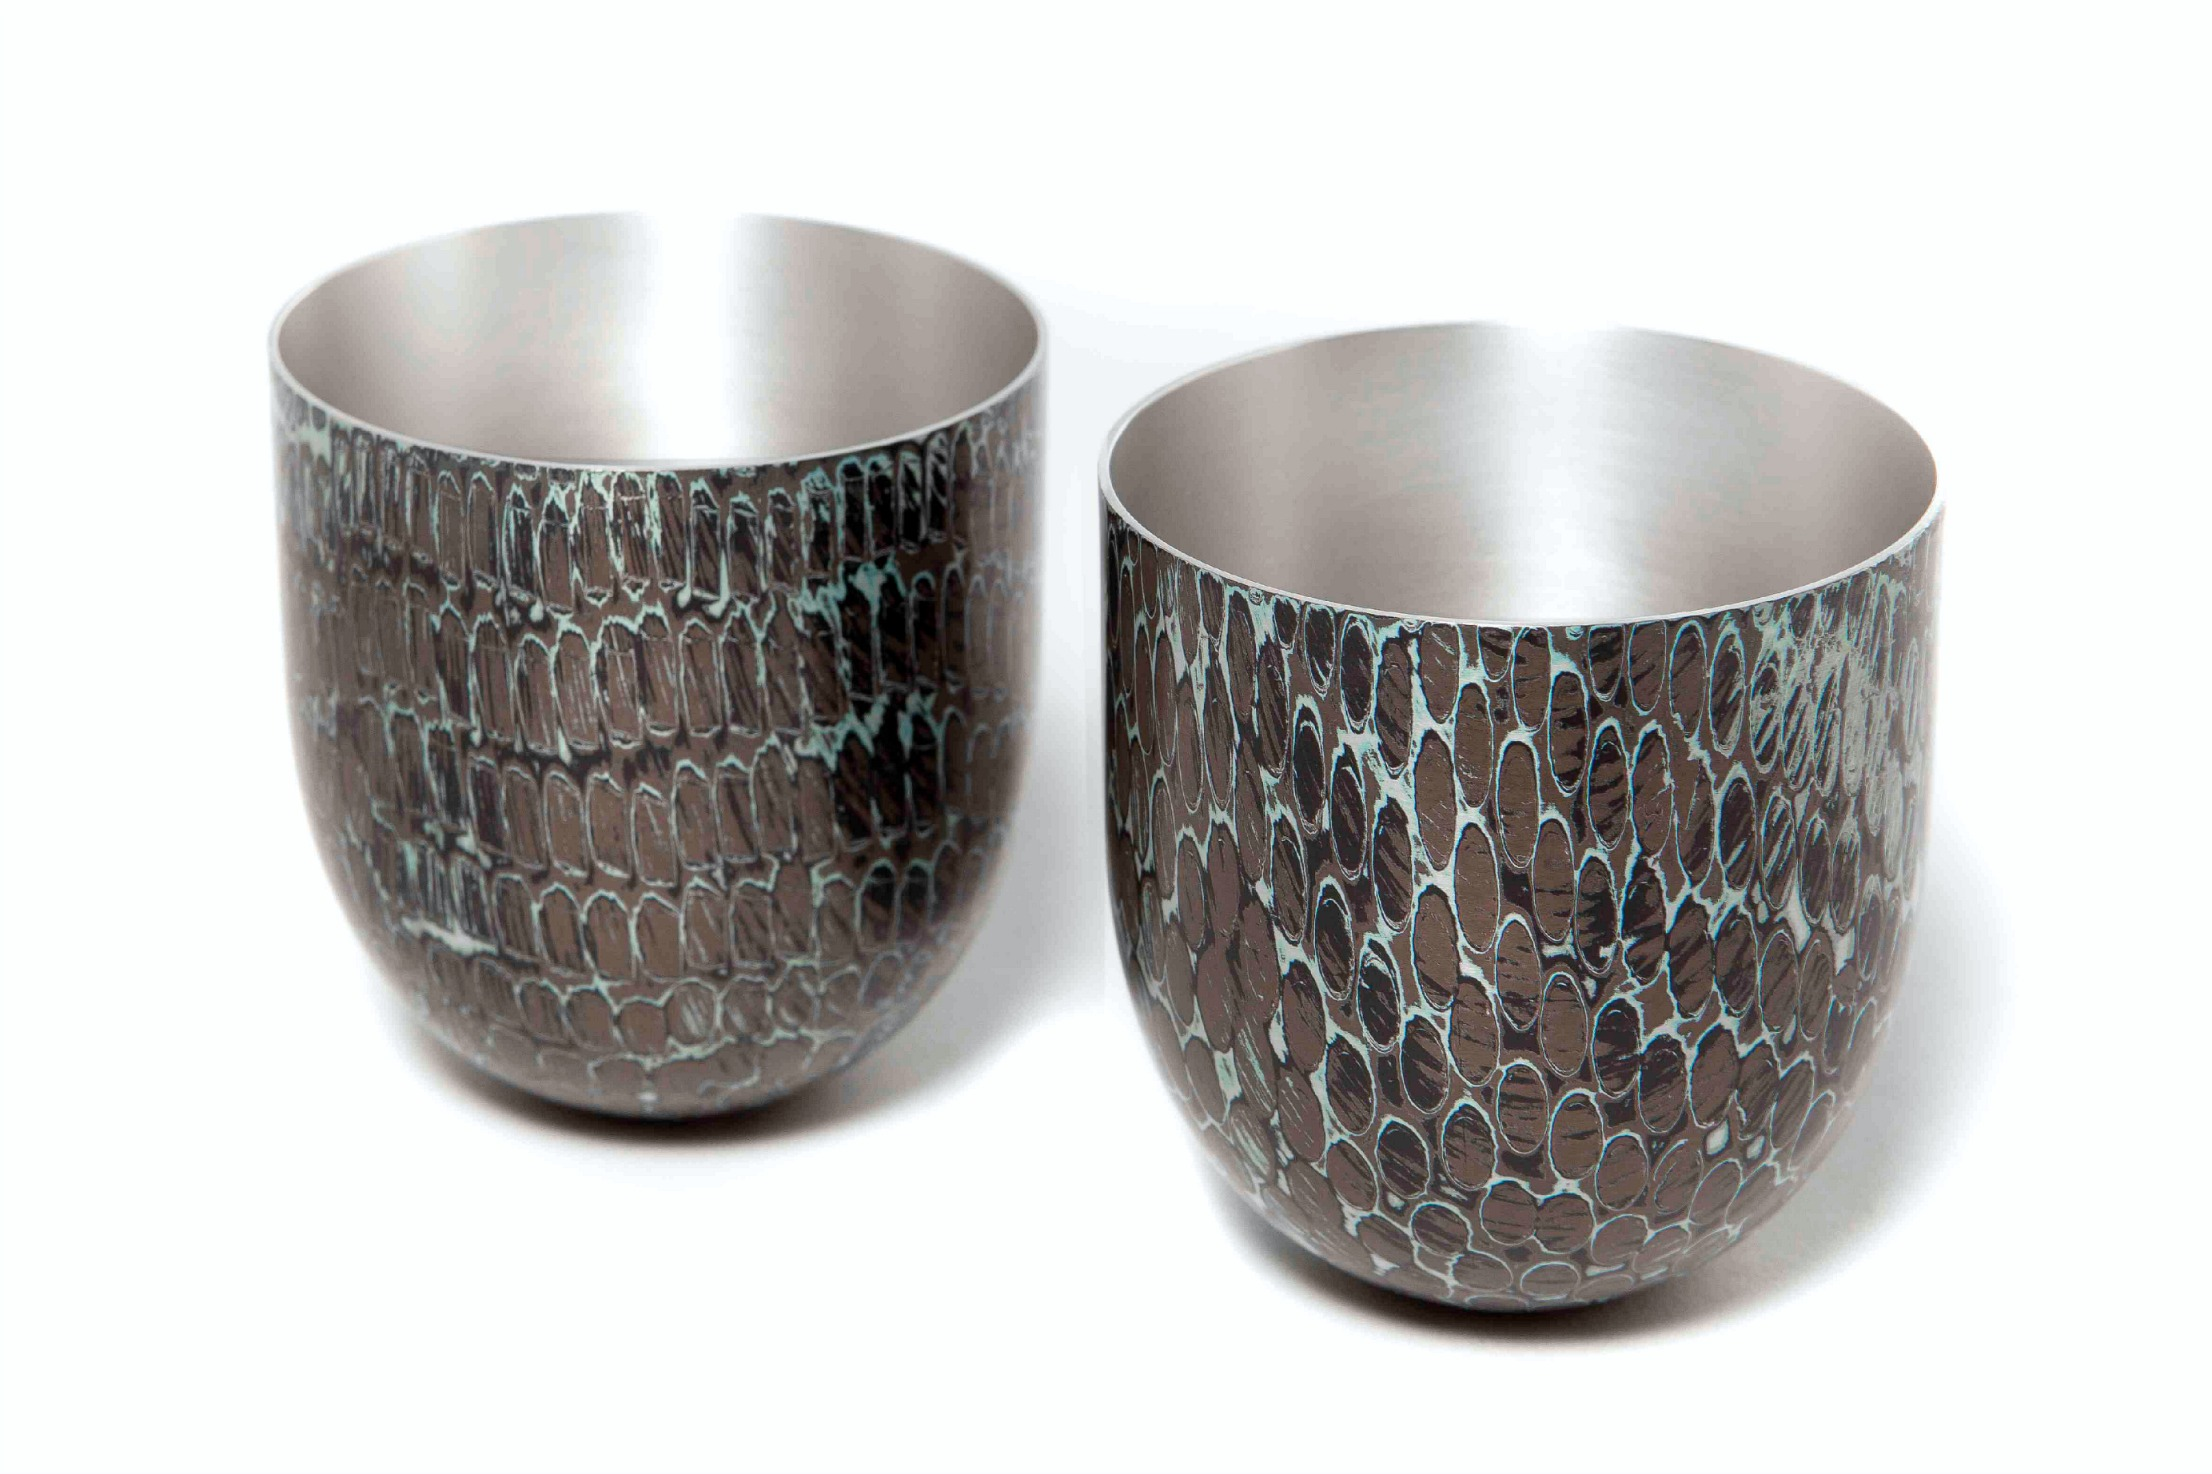 2 Spun Mokume Gane Bowls made from 7 layers of silver copper and gilding metal Ht 6.5cm Dia 5.8cm